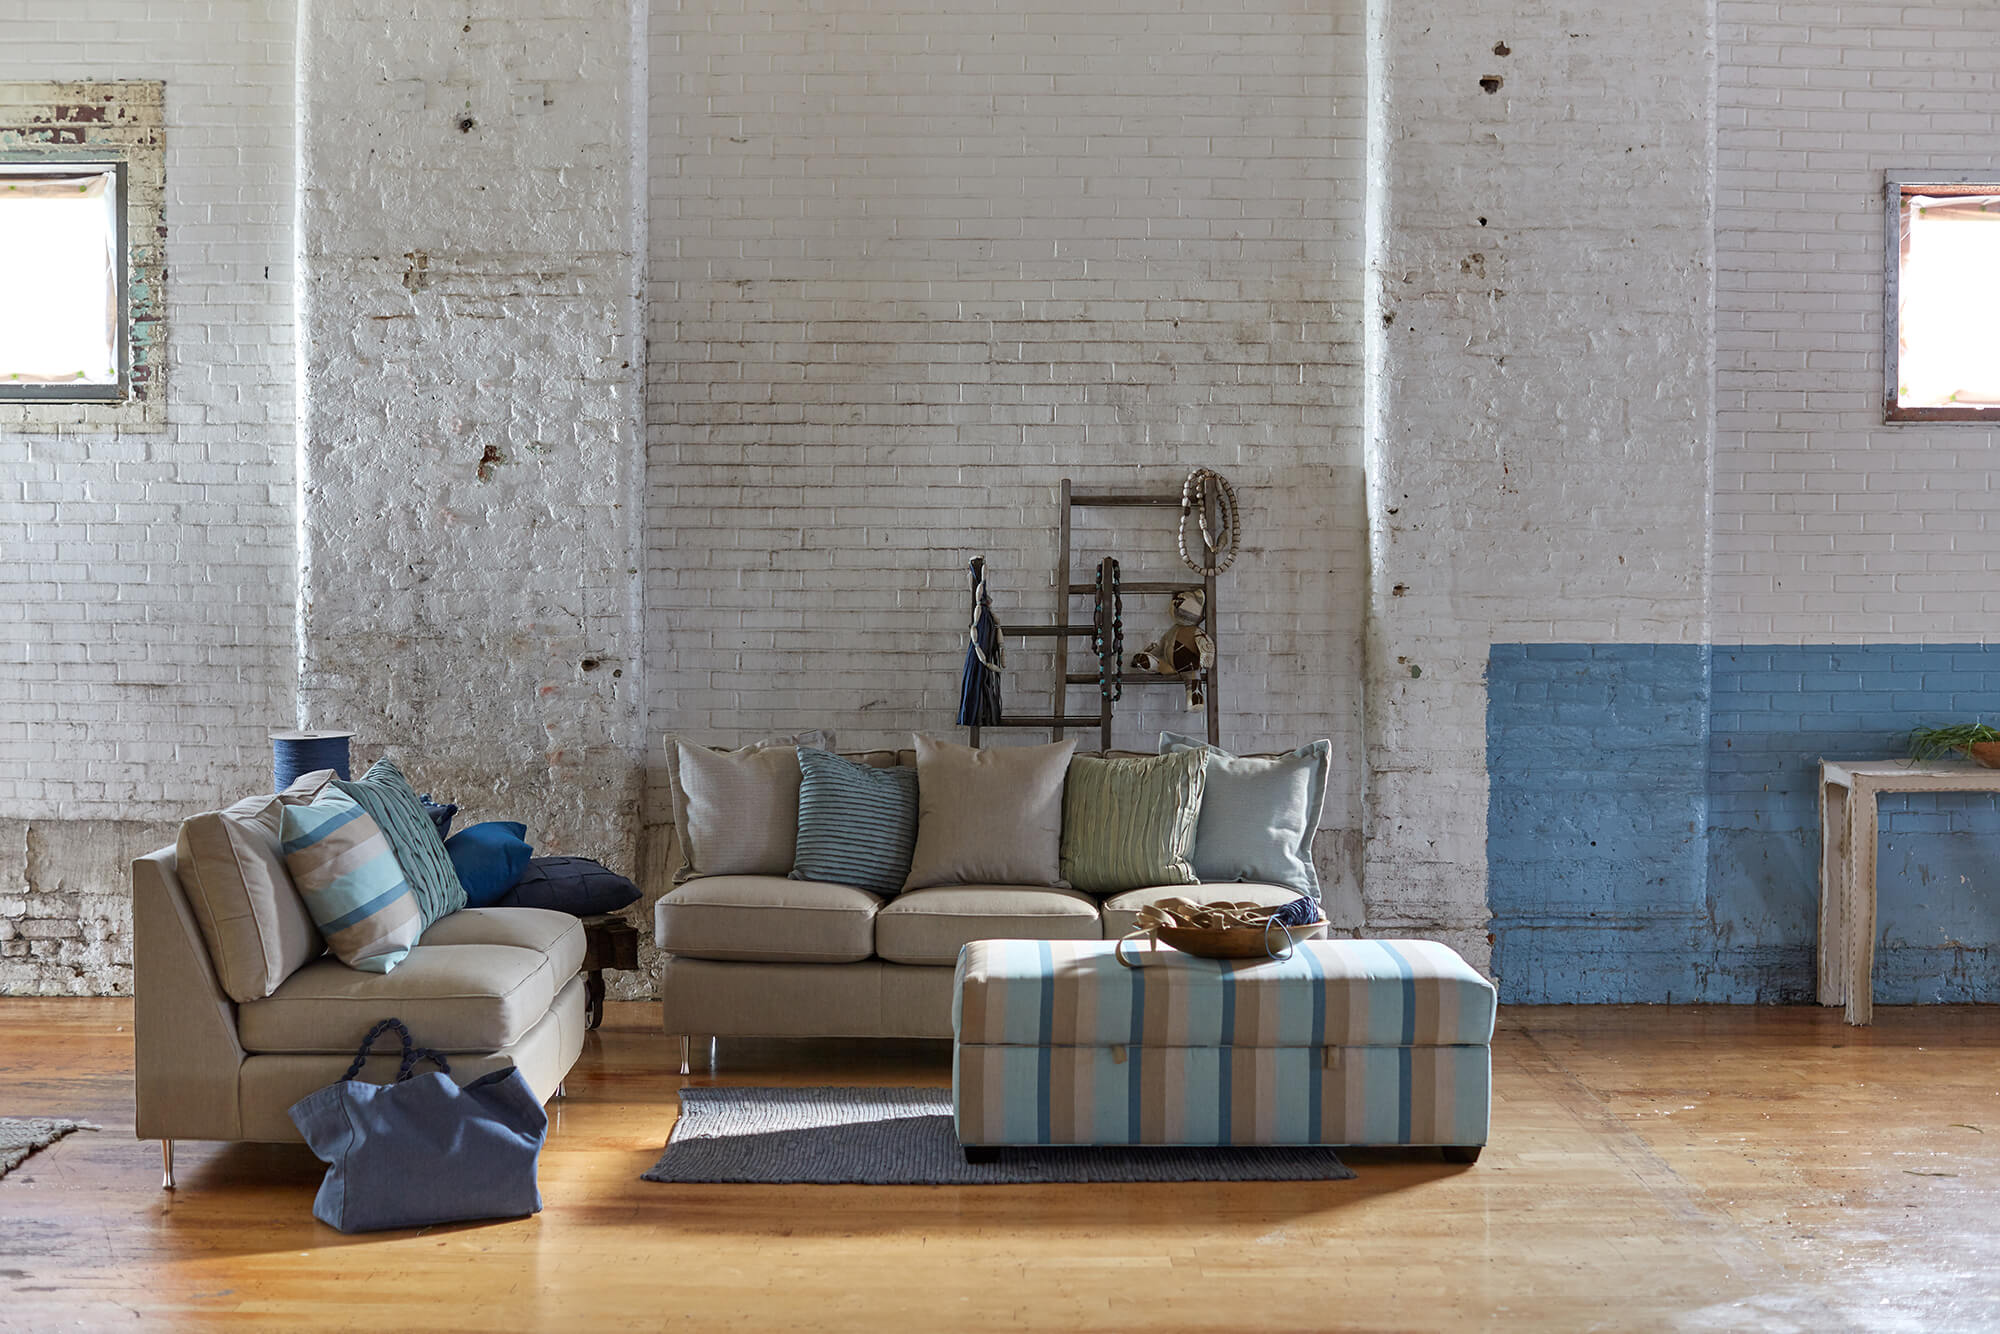 Neutral sofas are complemented with a large upholstered ottoman with blue striped Sunbrella fabric